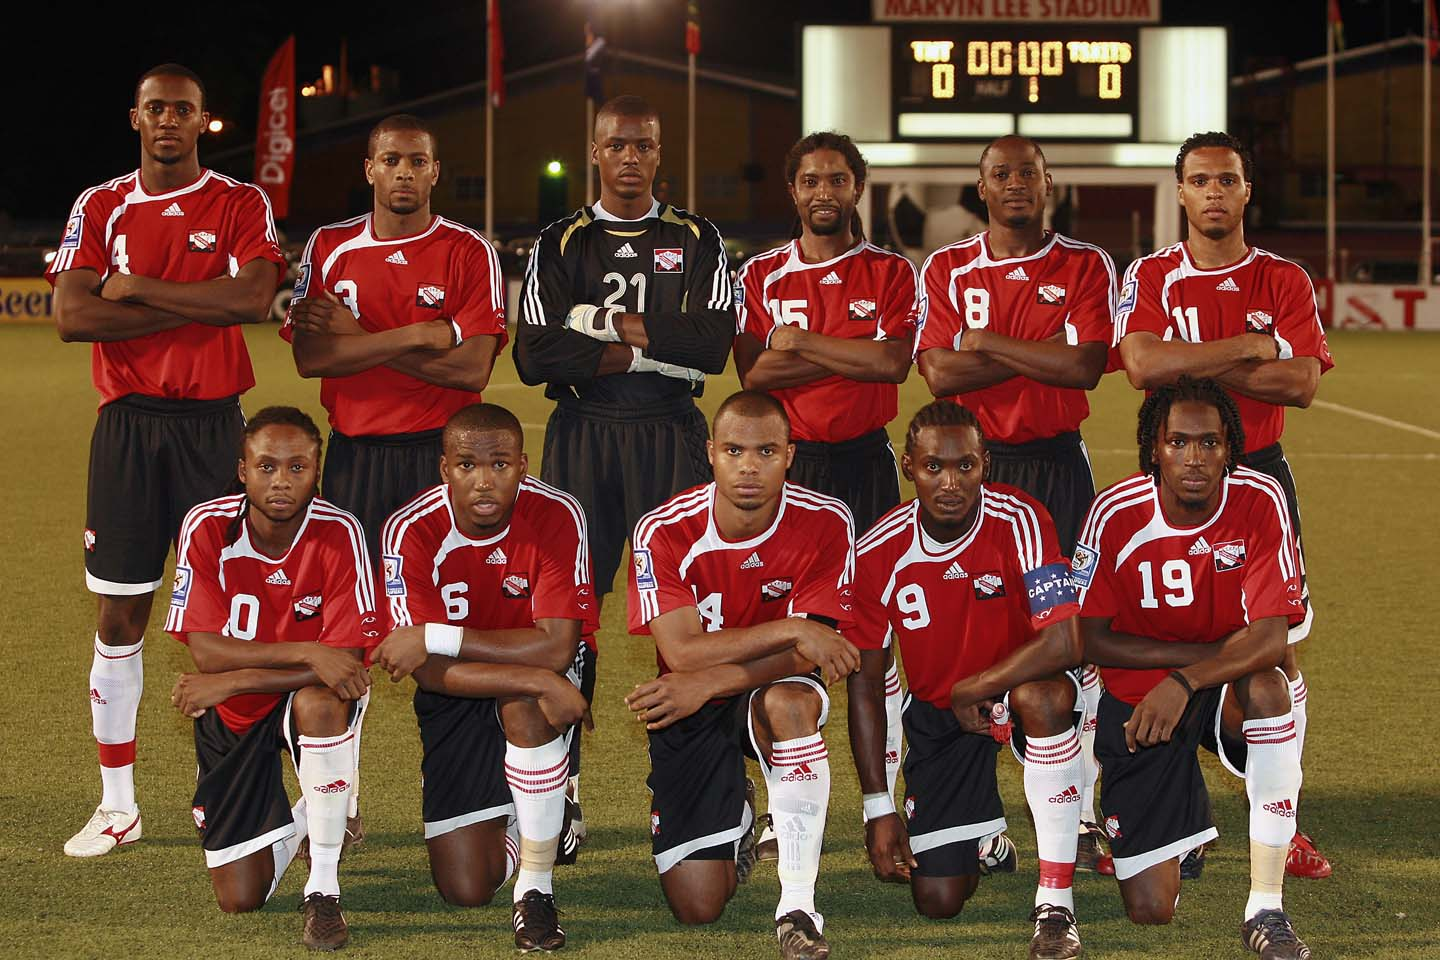 T&T Team line up before St Kitts game (Photo: Digicelfootball.com).